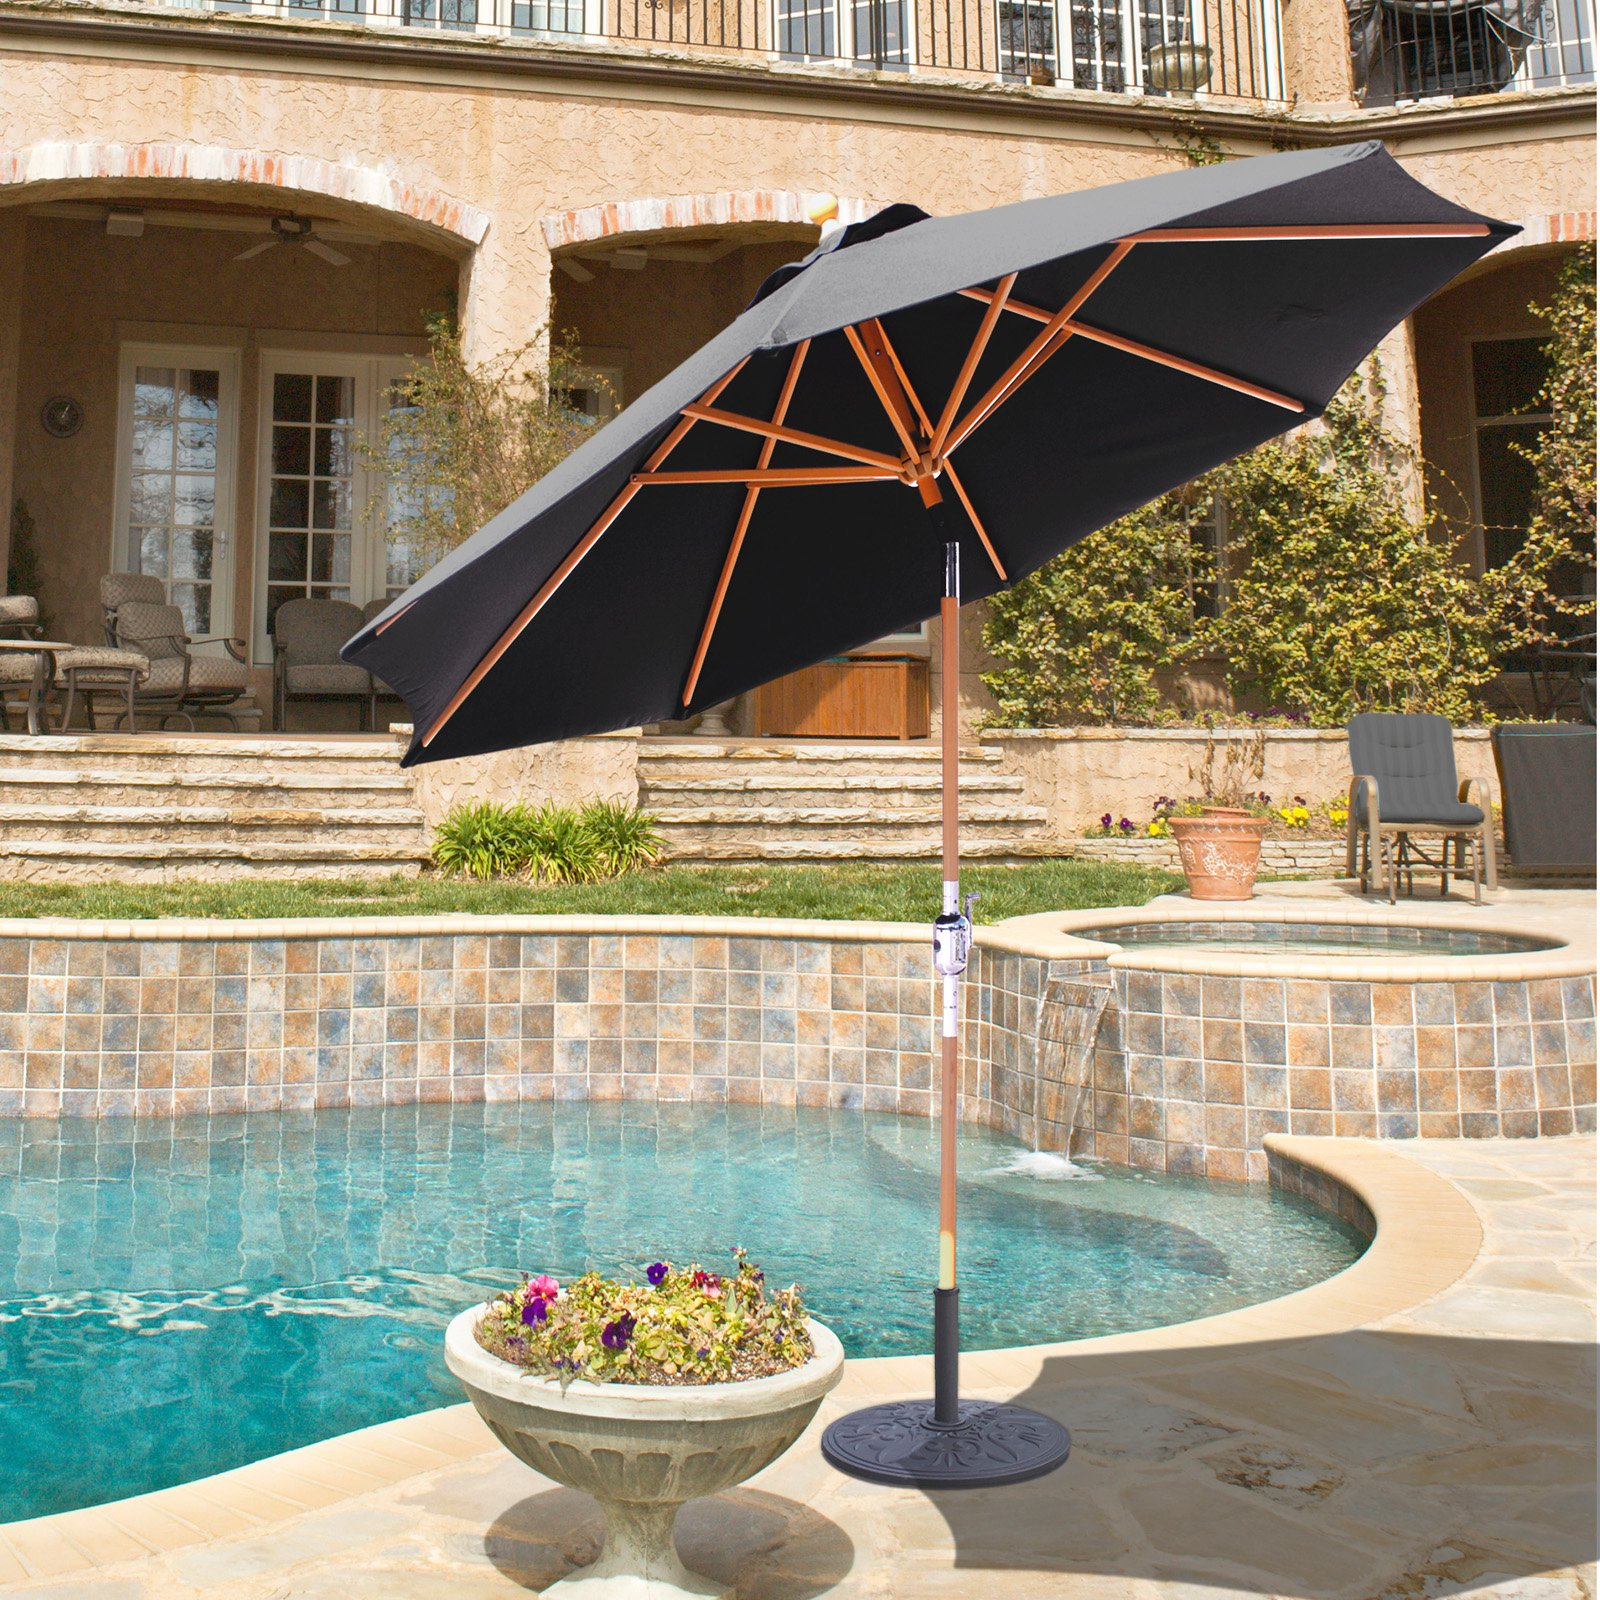 Galtech 9-ft. Rotational Tilt Wood Sunbrella Patio Umbrella ...